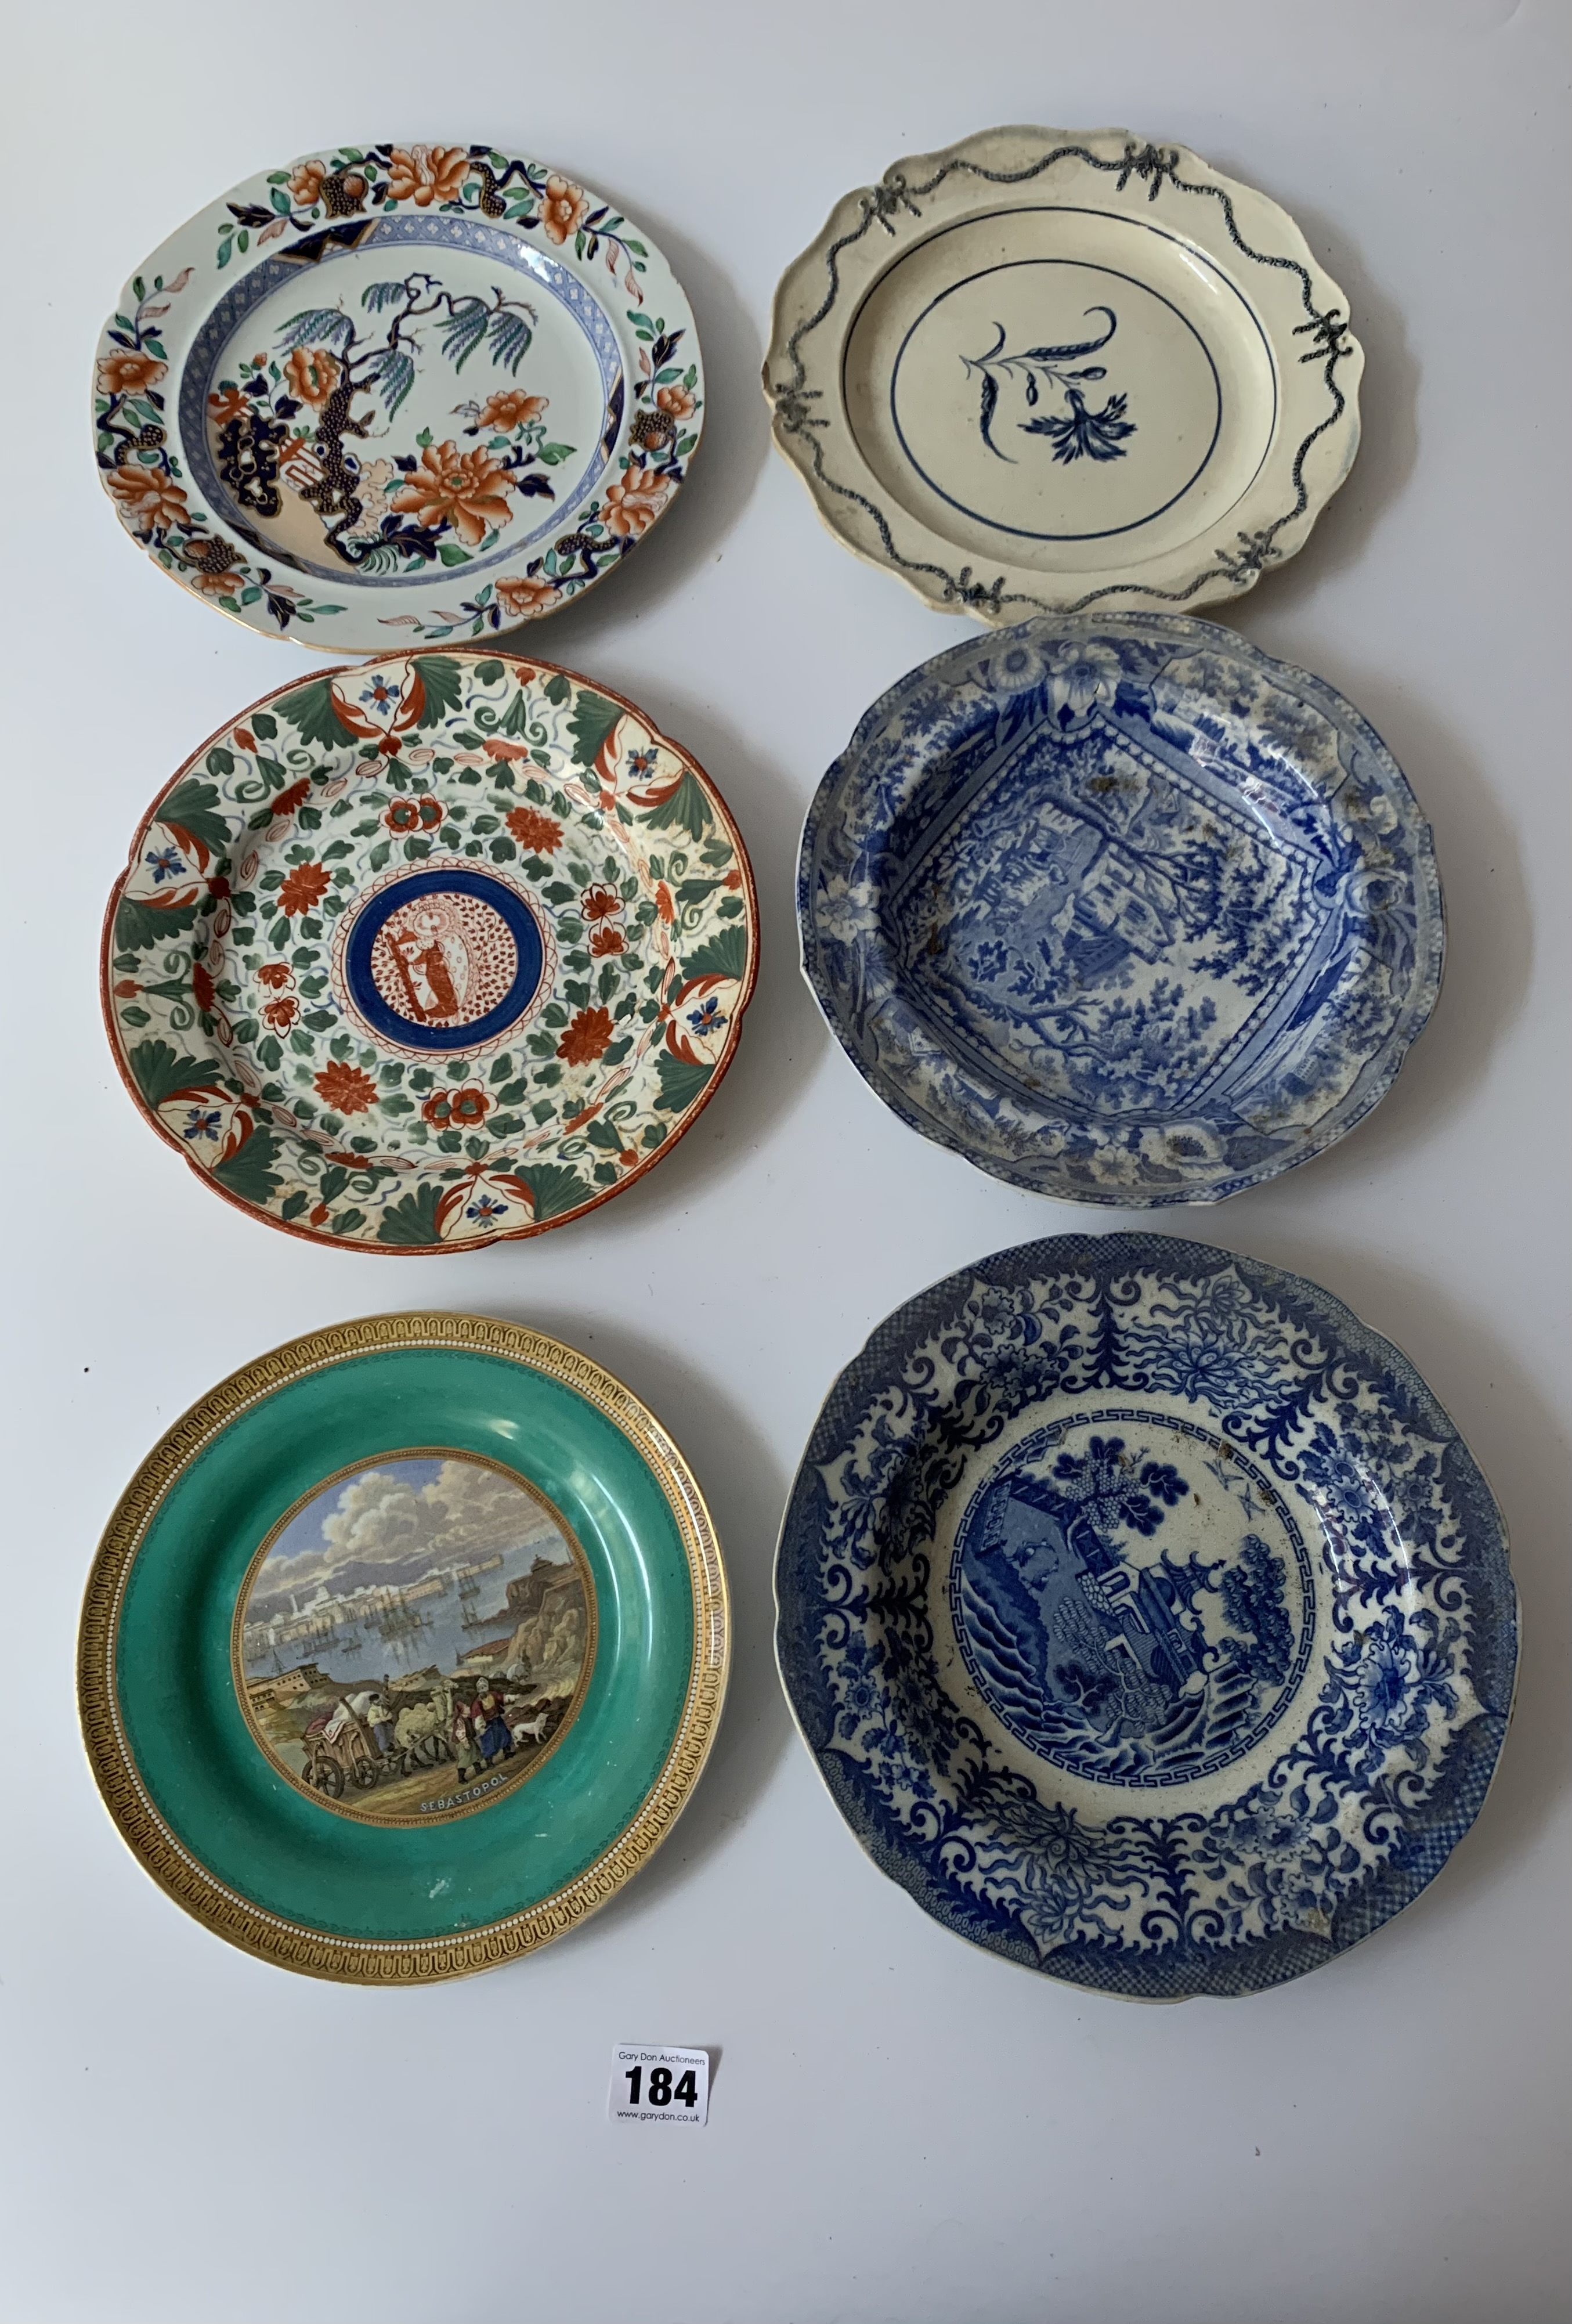 """16 assorted plates and dishes 8"""" – 11"""" diameter - Image 4 of 7"""